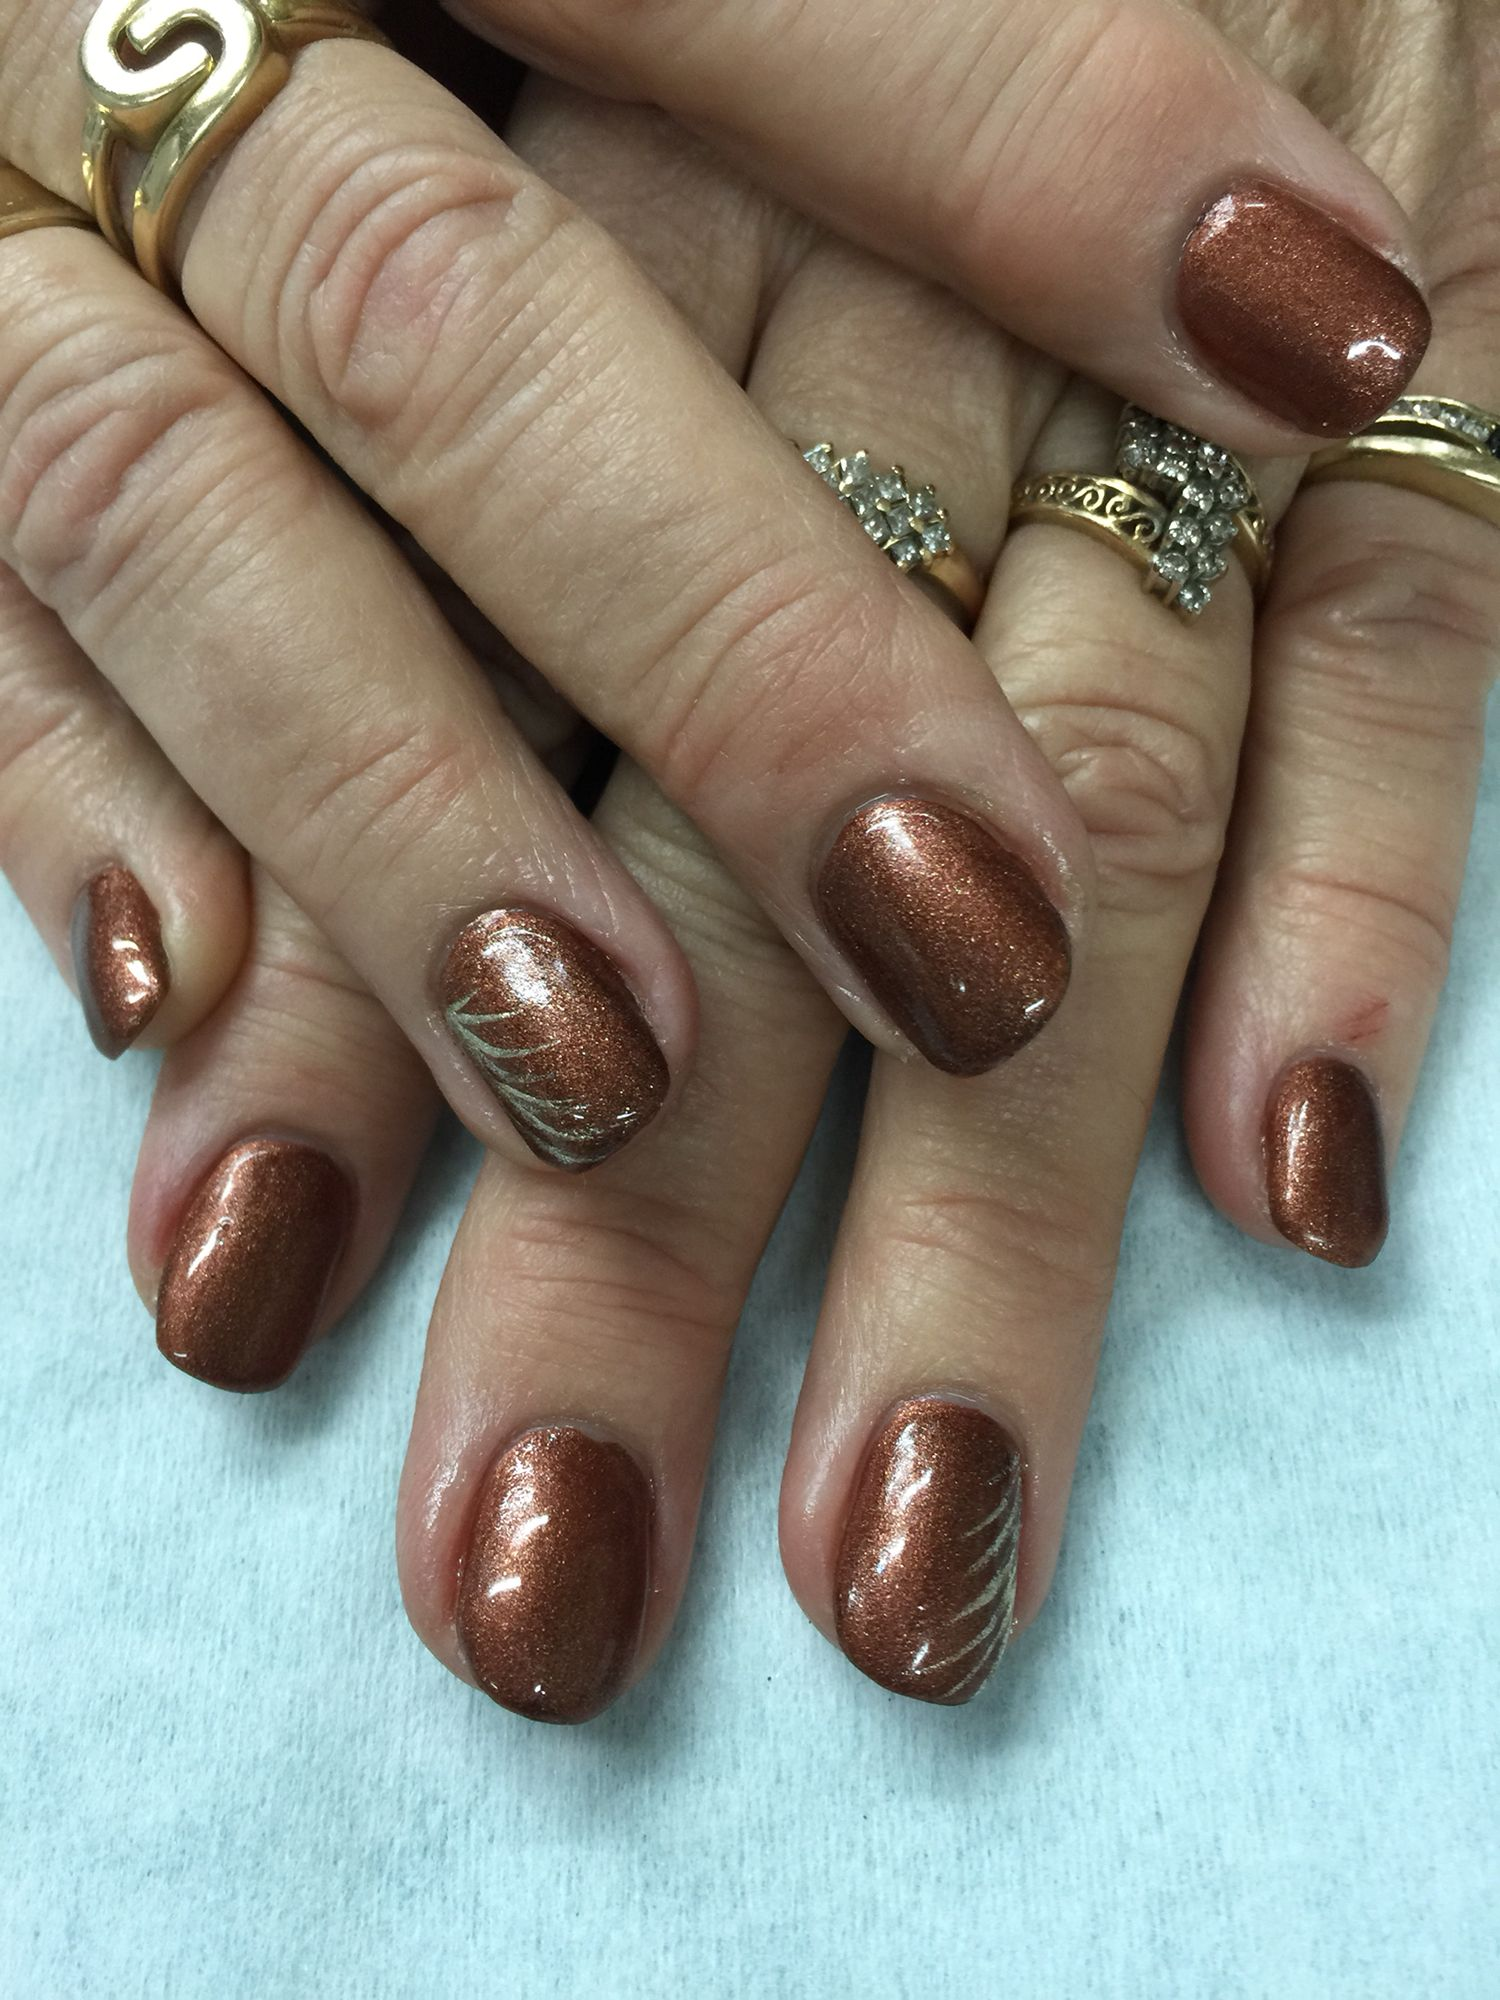 Cool Copper Brown Gel Nails With Gold Accents All Done With Non Toxic And Odorless Gel Prom Nail Designs Fall Gel Nails Glitter Gel Nail Designs